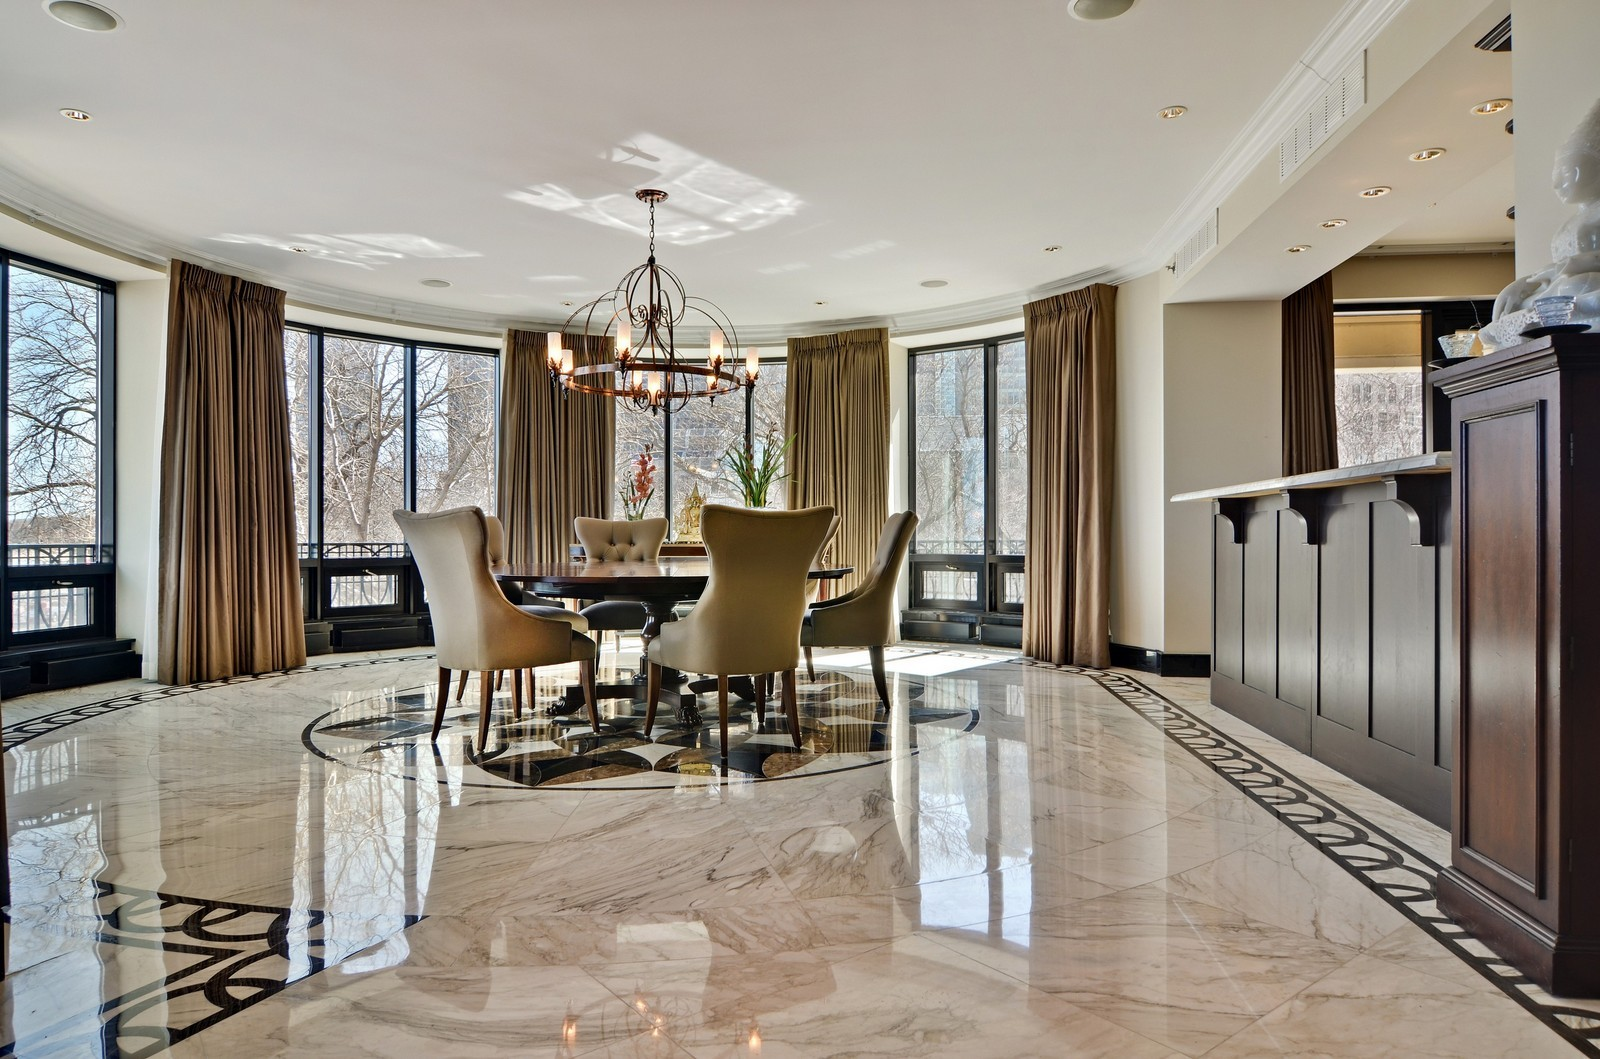 Real Estate Photography - 840 N Lake Shore Dr, Unit 201, Chicago, IL, 60611 - Dining Room